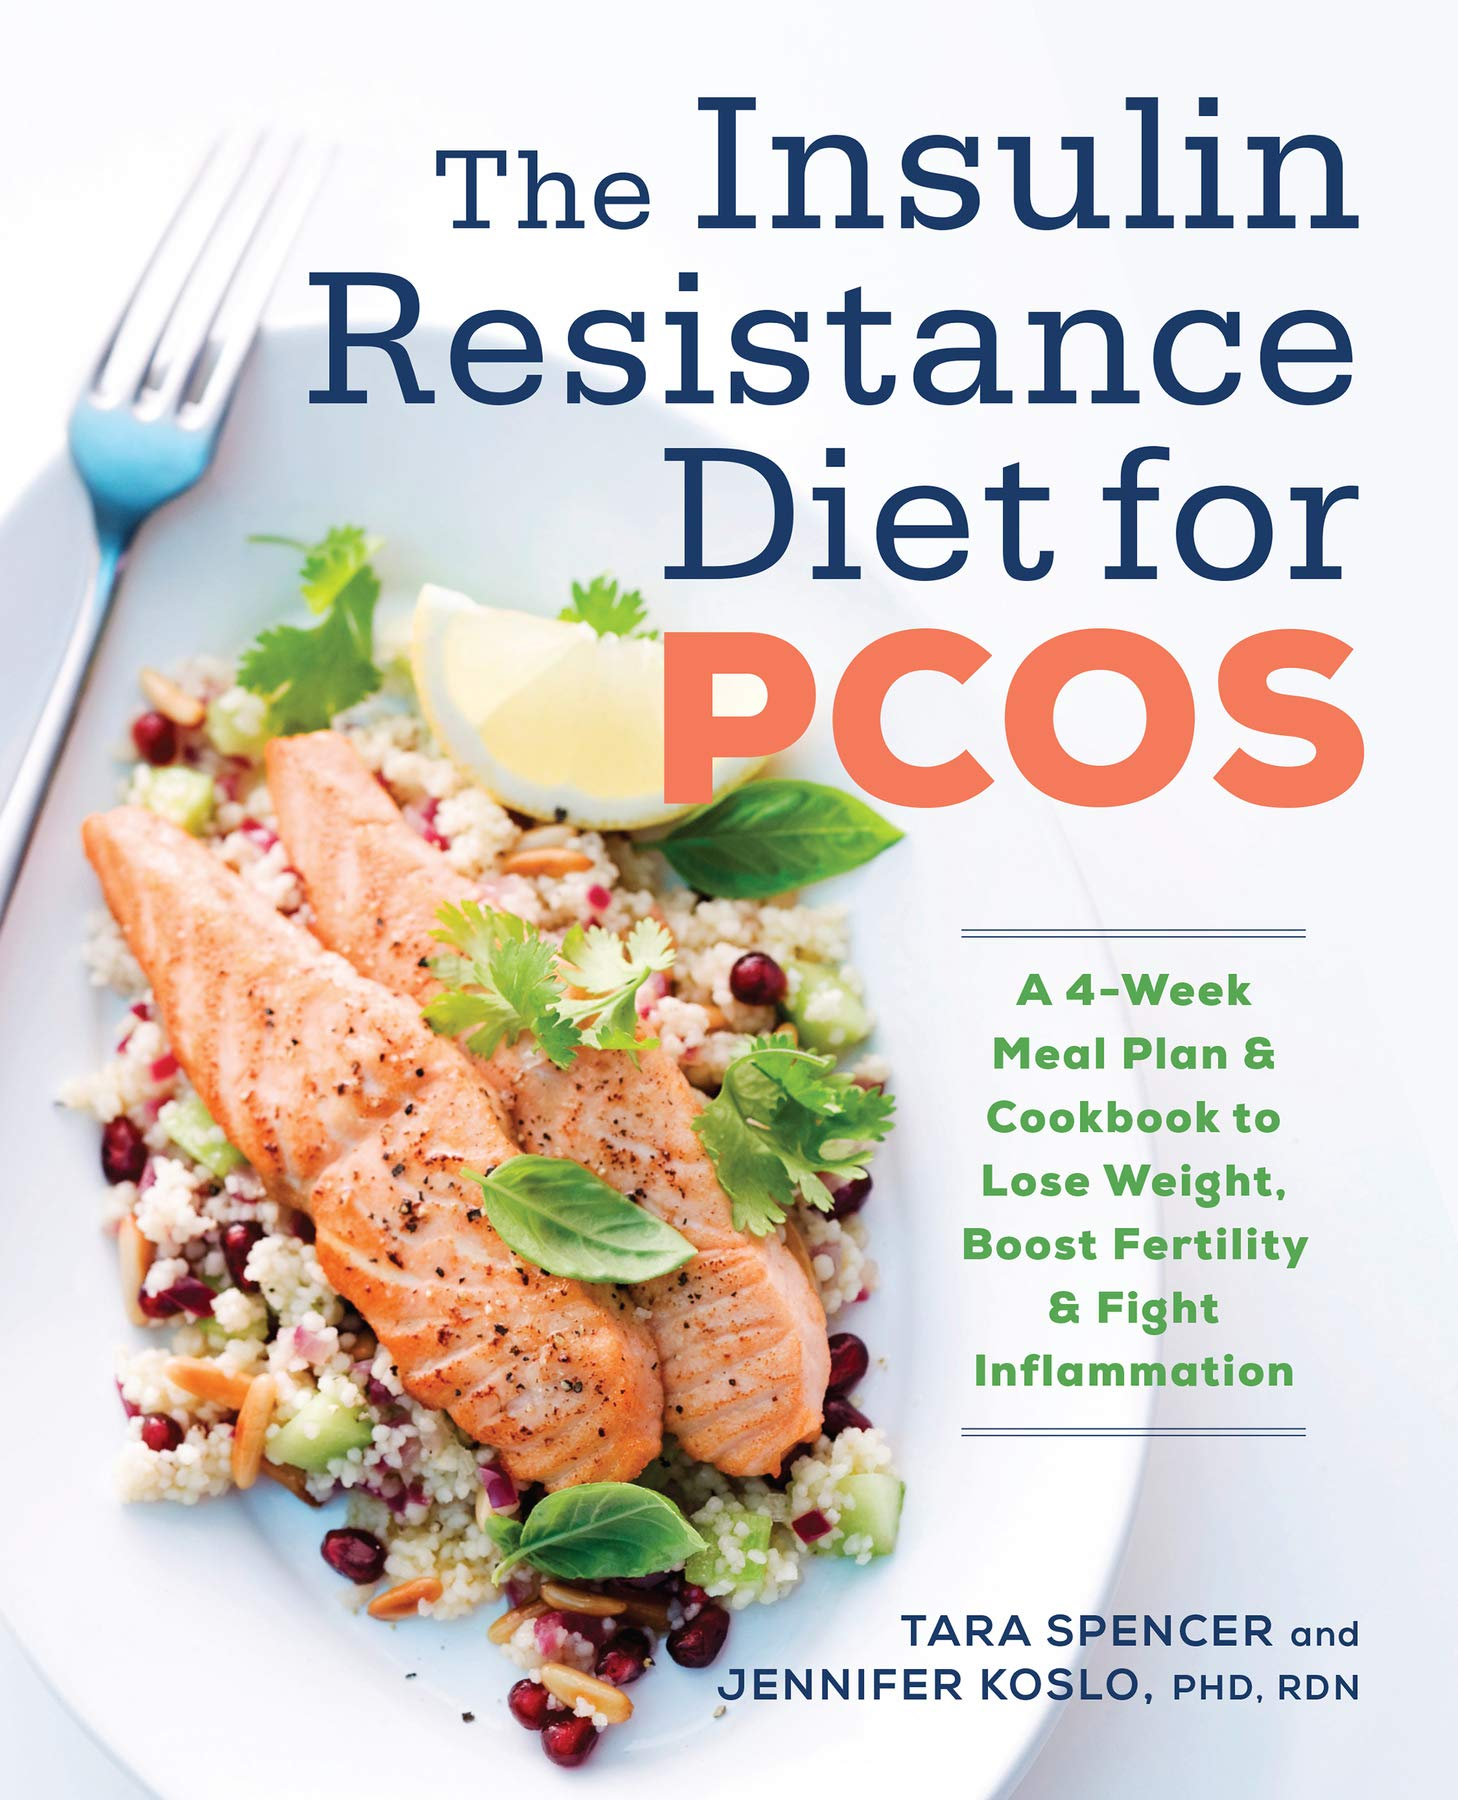 diet plan for pcos to lose weight